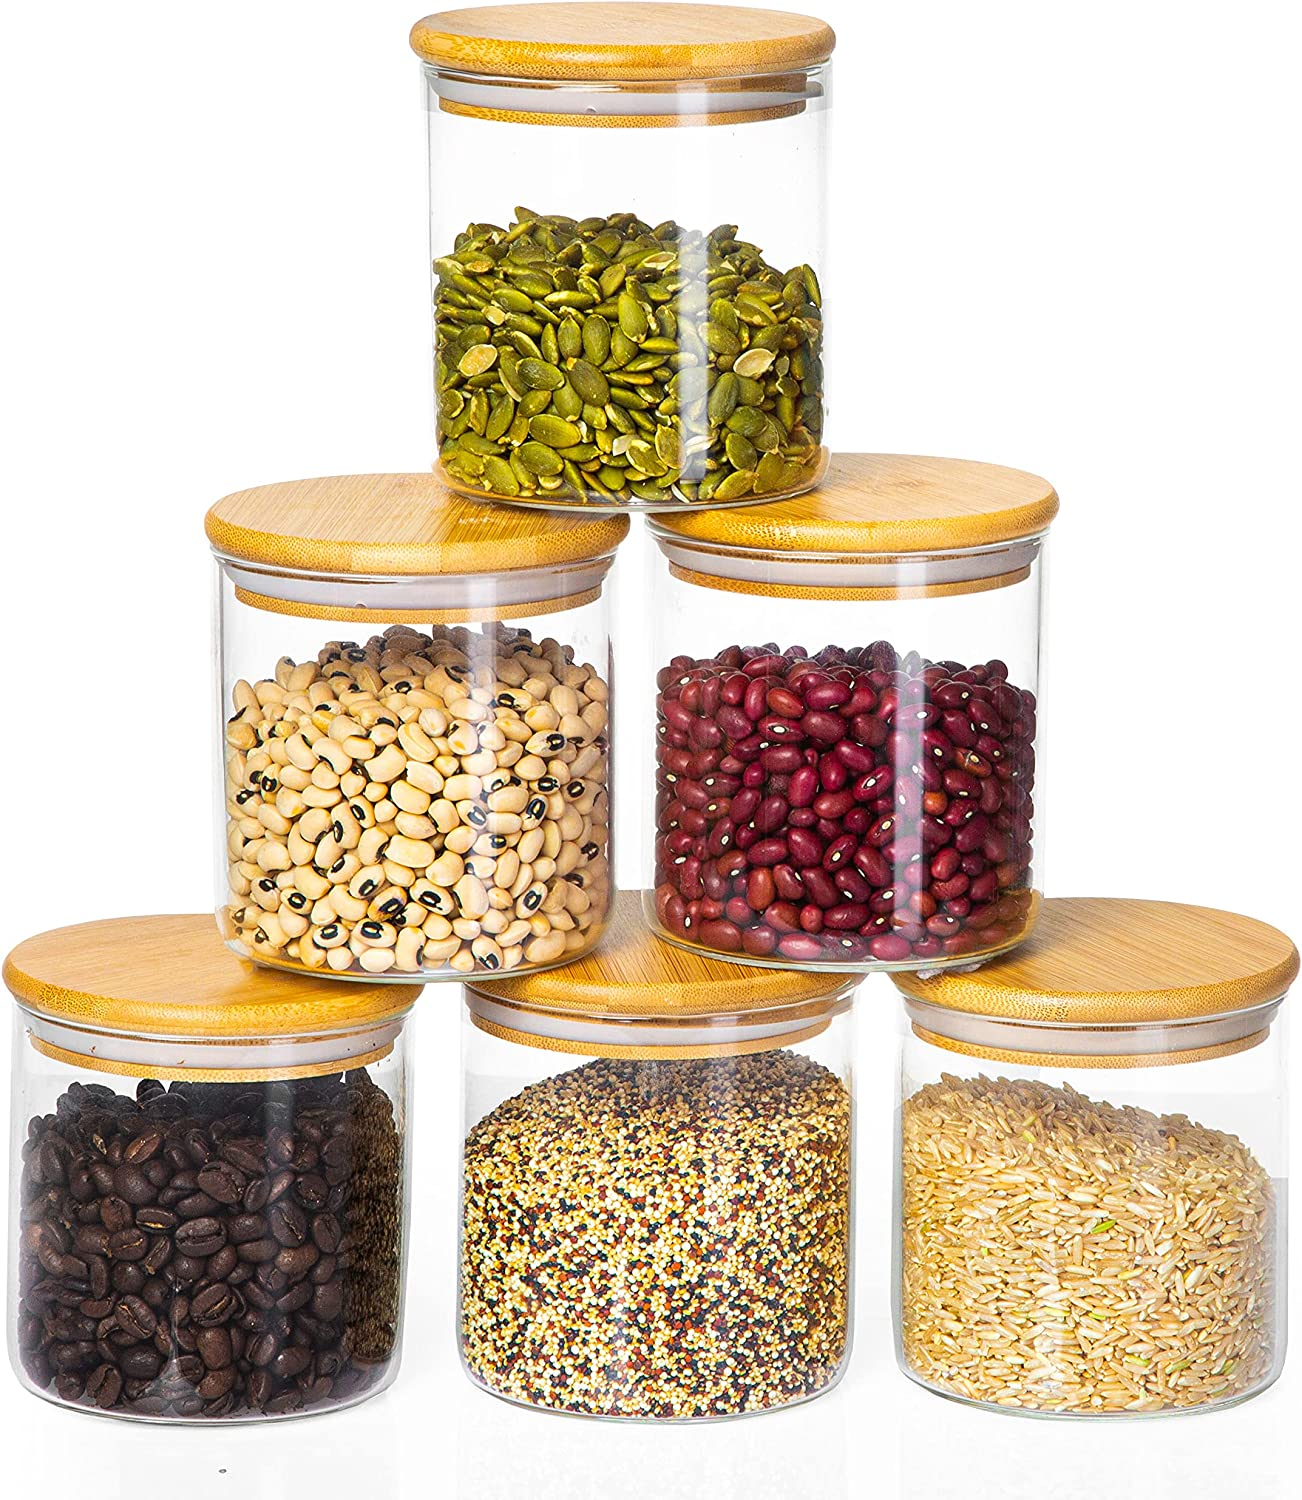 Glass Food Storage Containers with Bamboo Lids, 6 Pack - 23 Fluid oz Airtight Clear Kitchen Organization Canisters